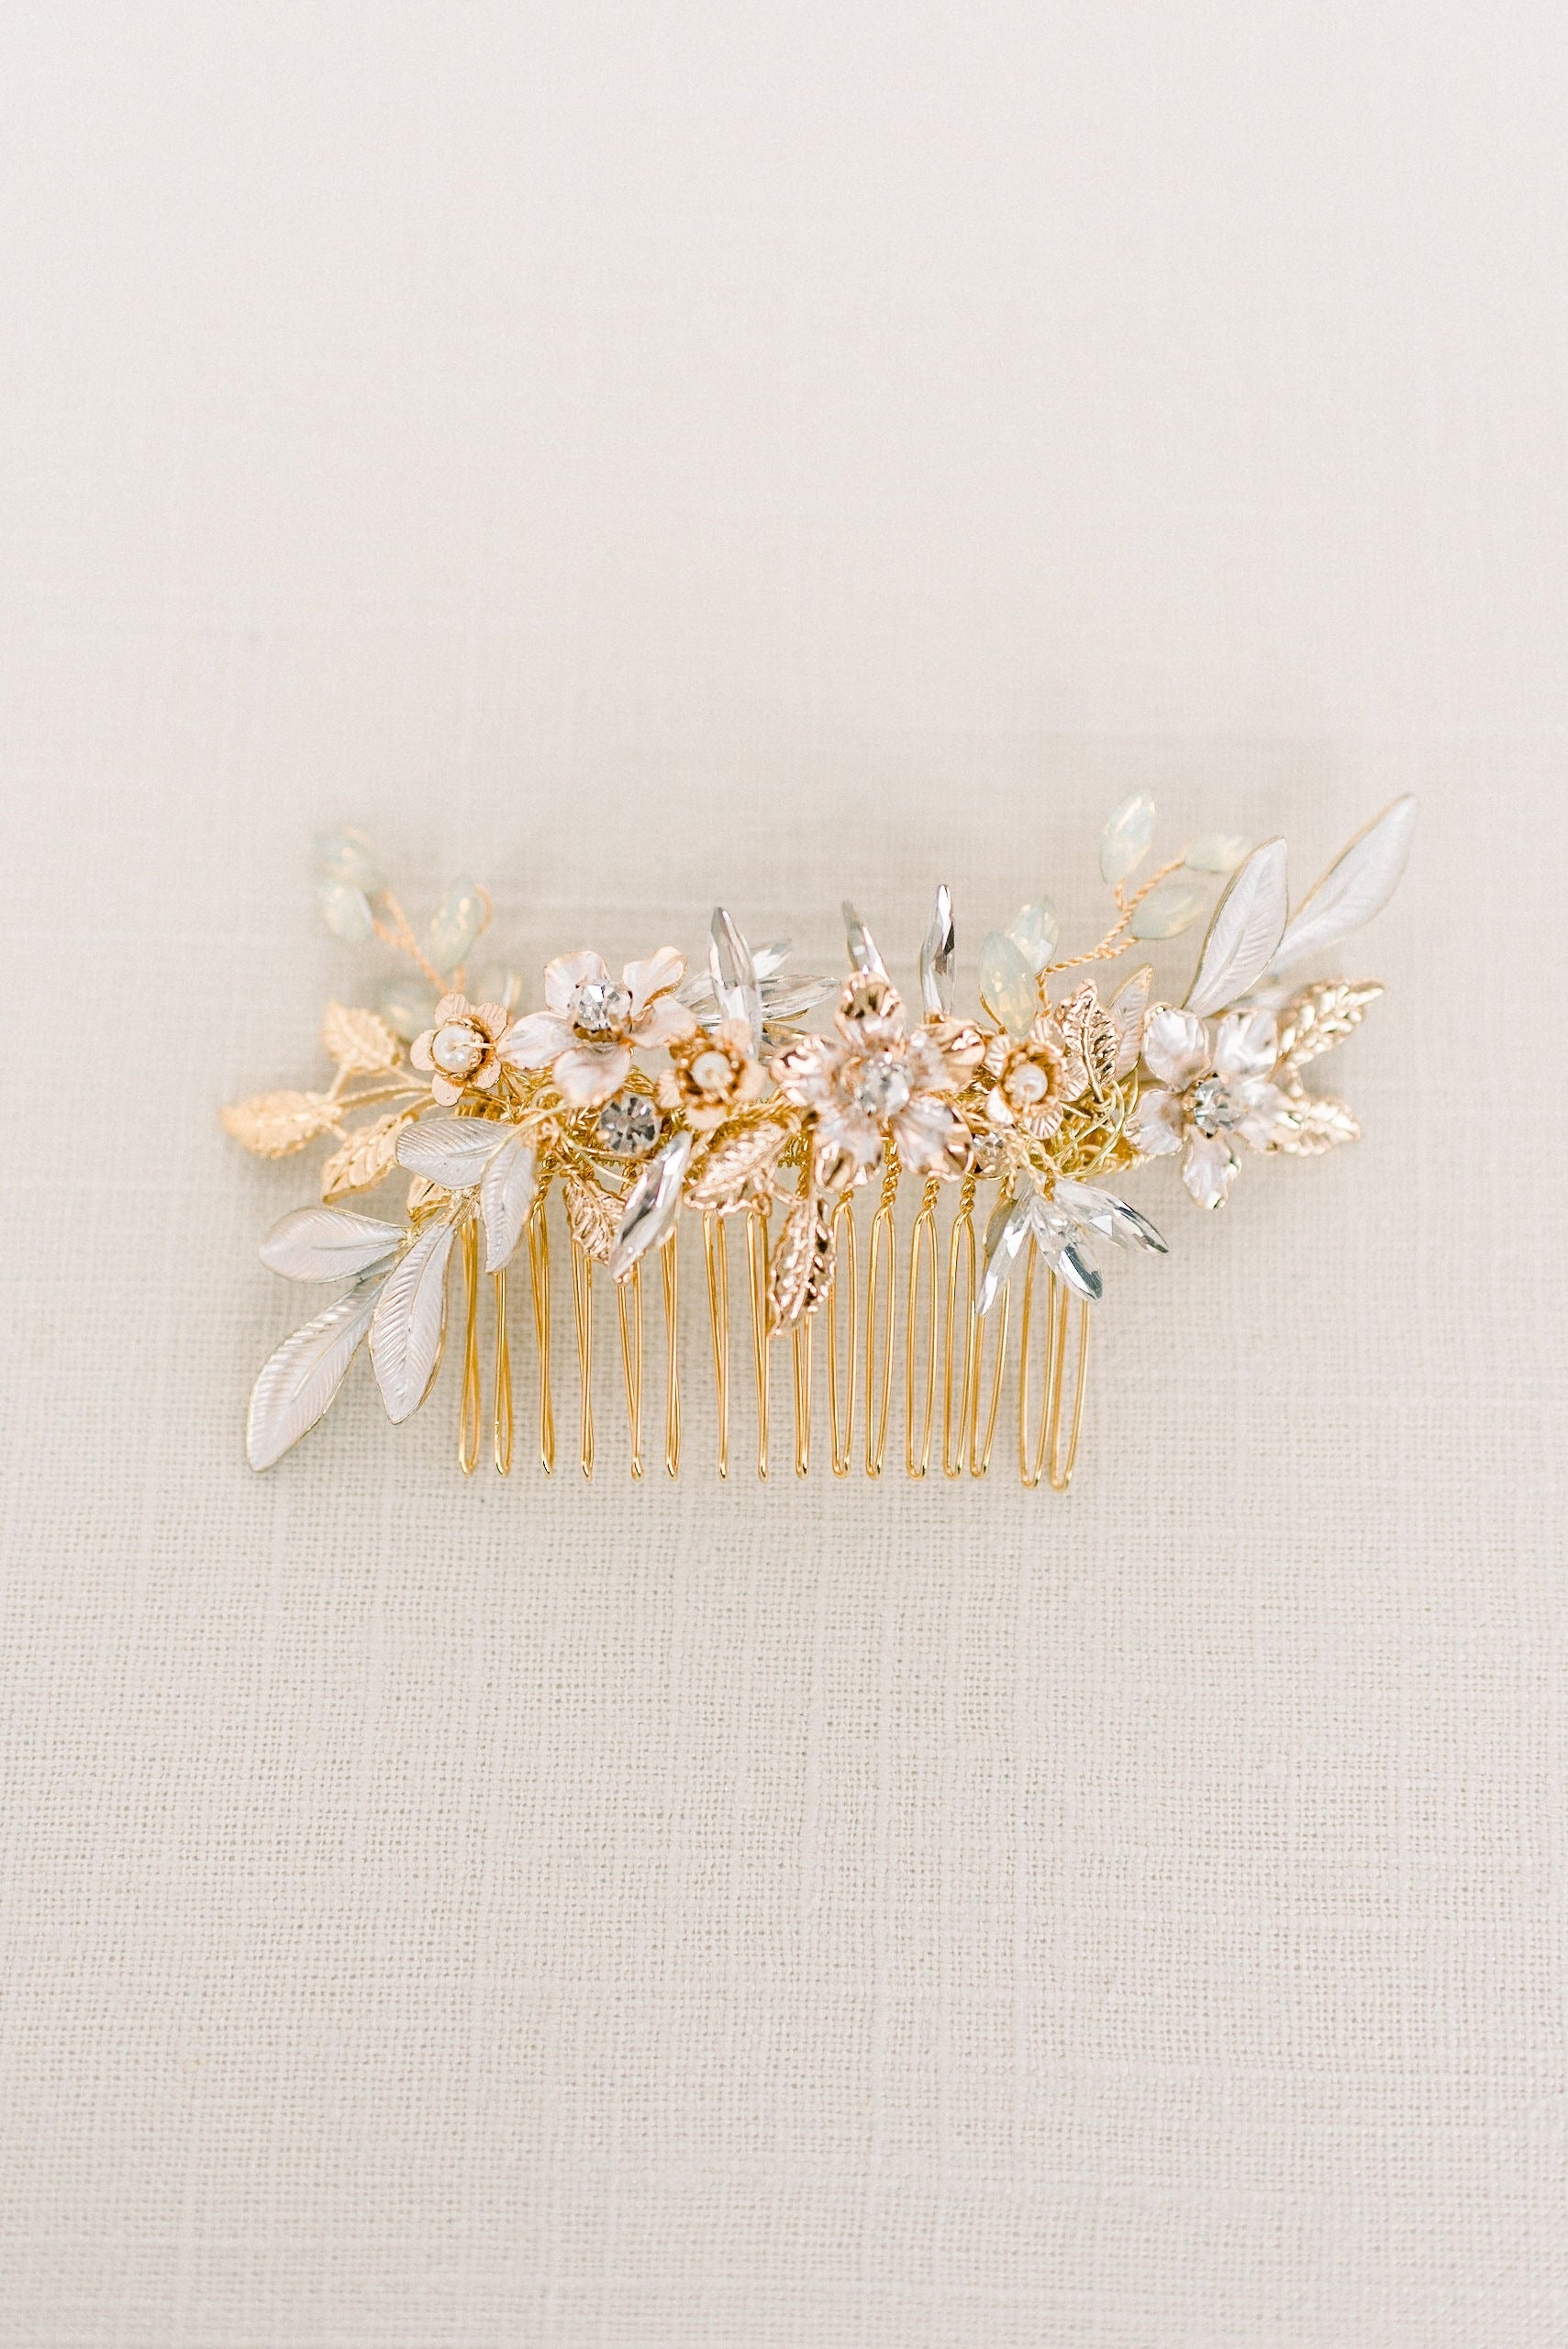 Gold and rhinestone floral hair comb - style 4001 - Tessa Kim